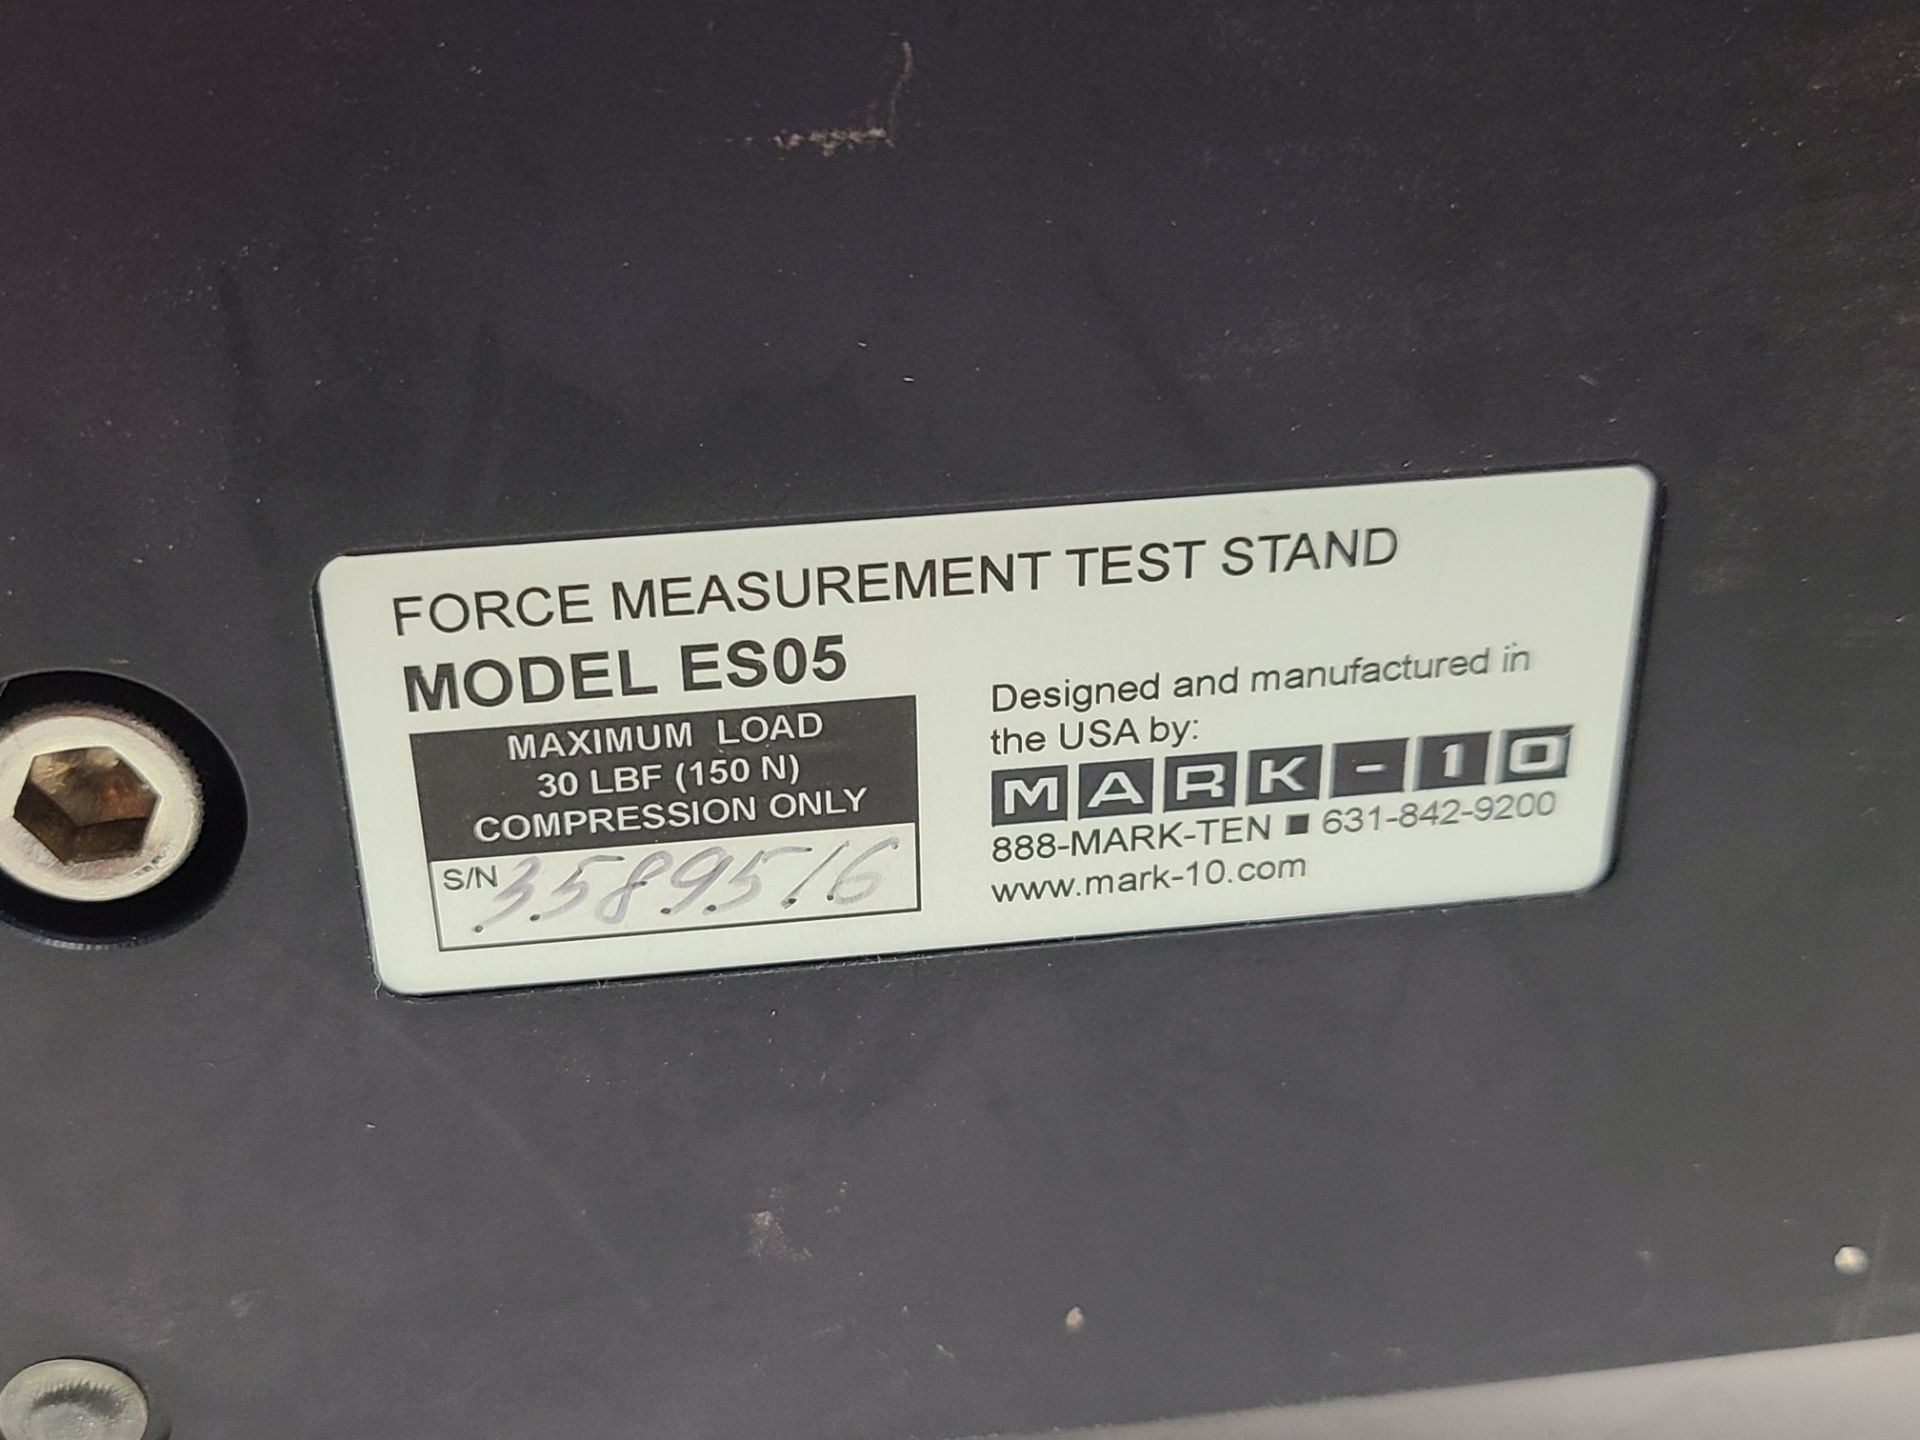 MARK-10 FORCE MEASUREMENT TEST STAND & TRANSDUCER - Image 5 of 8